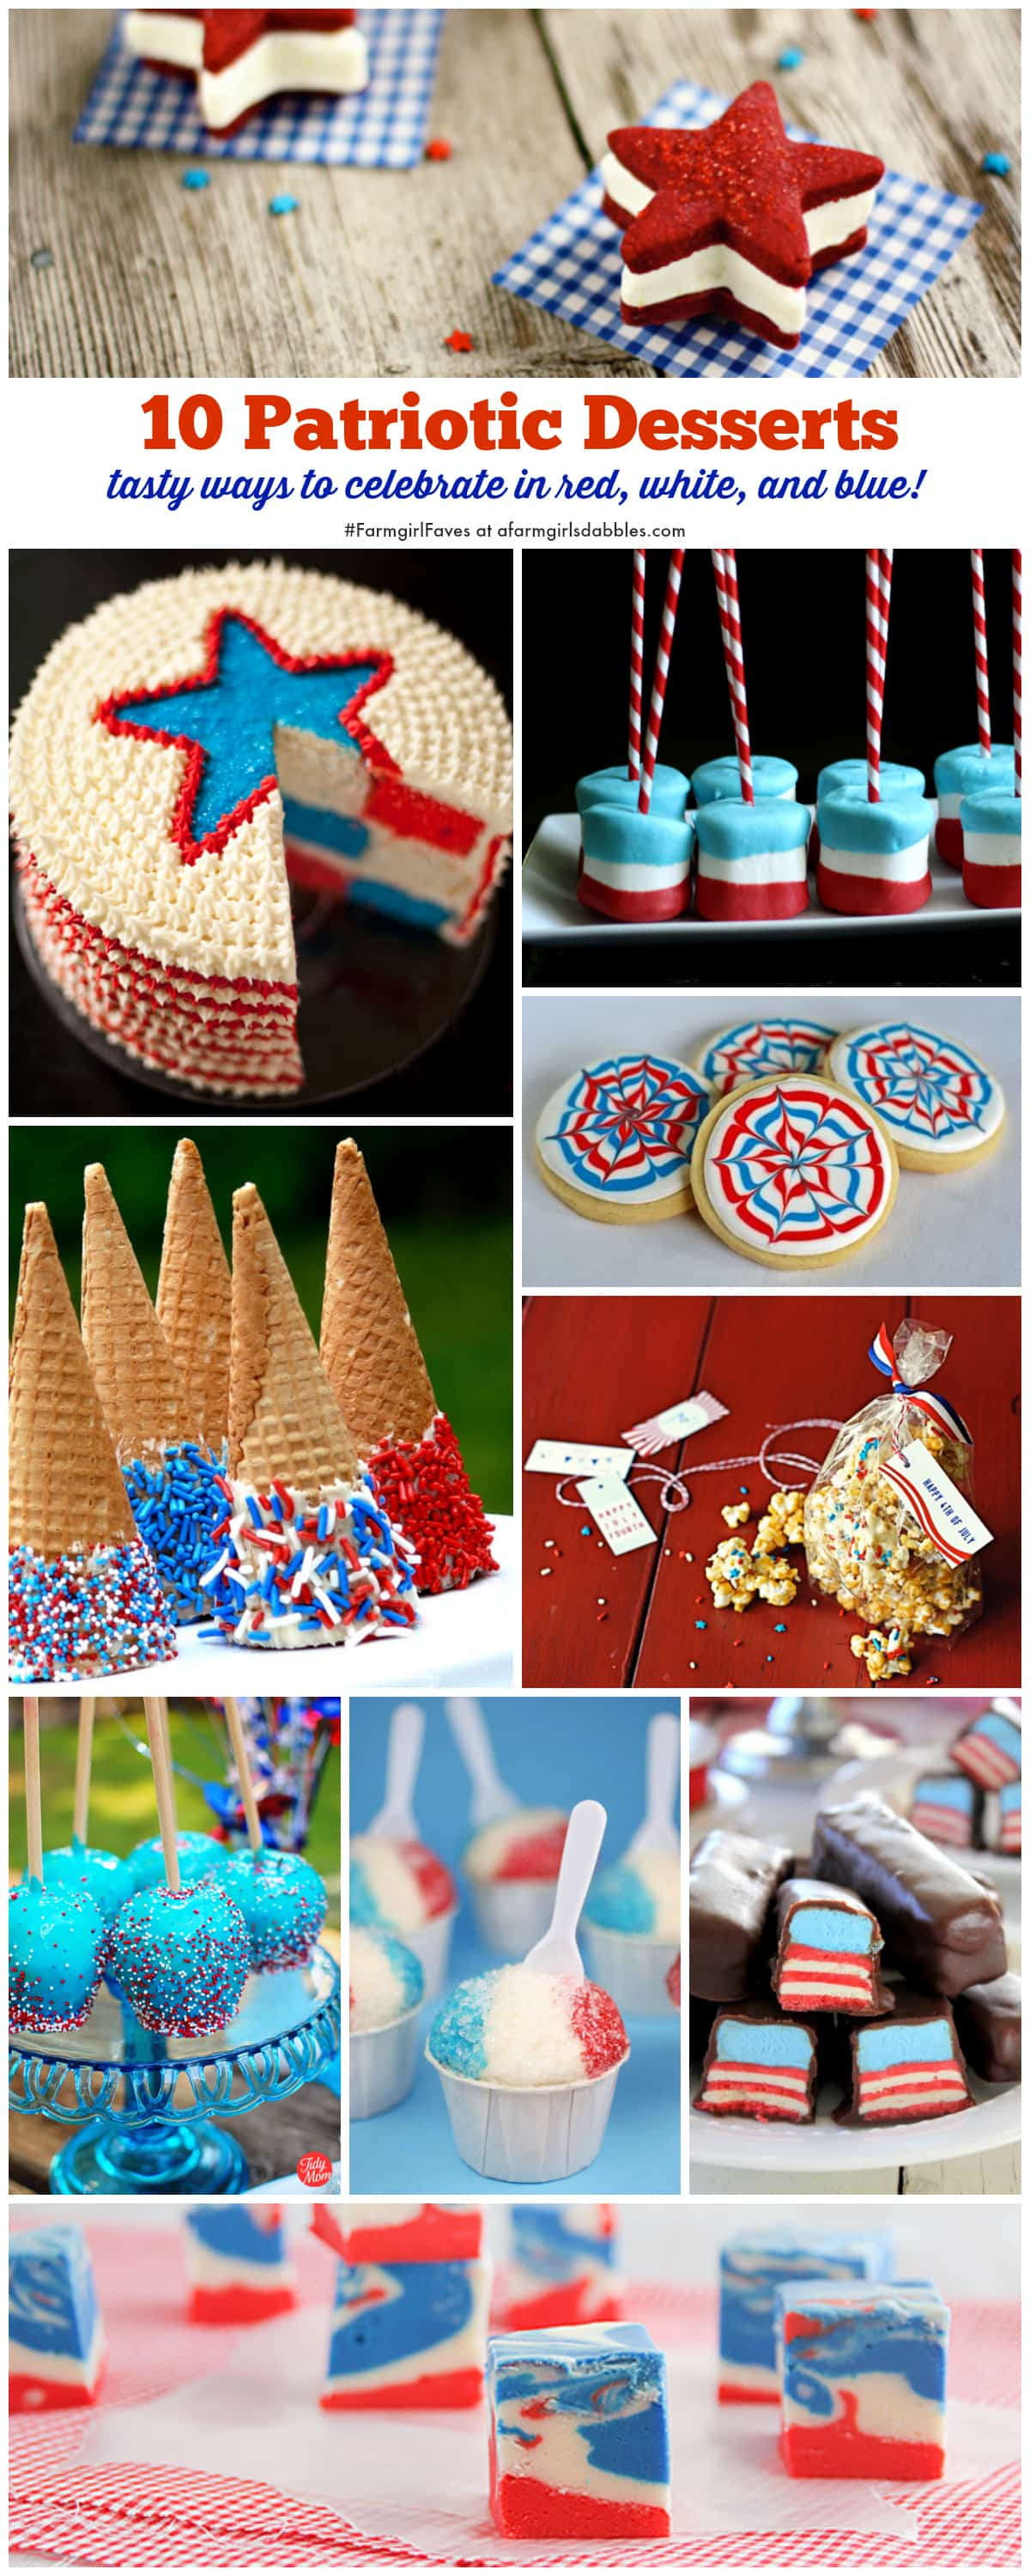 10 Patriotic Desserts, perfect for the 4th of July and Memorial Day! afarmgirlsdabbles.com #farmgirlfaves #patriotic #4thofjuly #memorialday